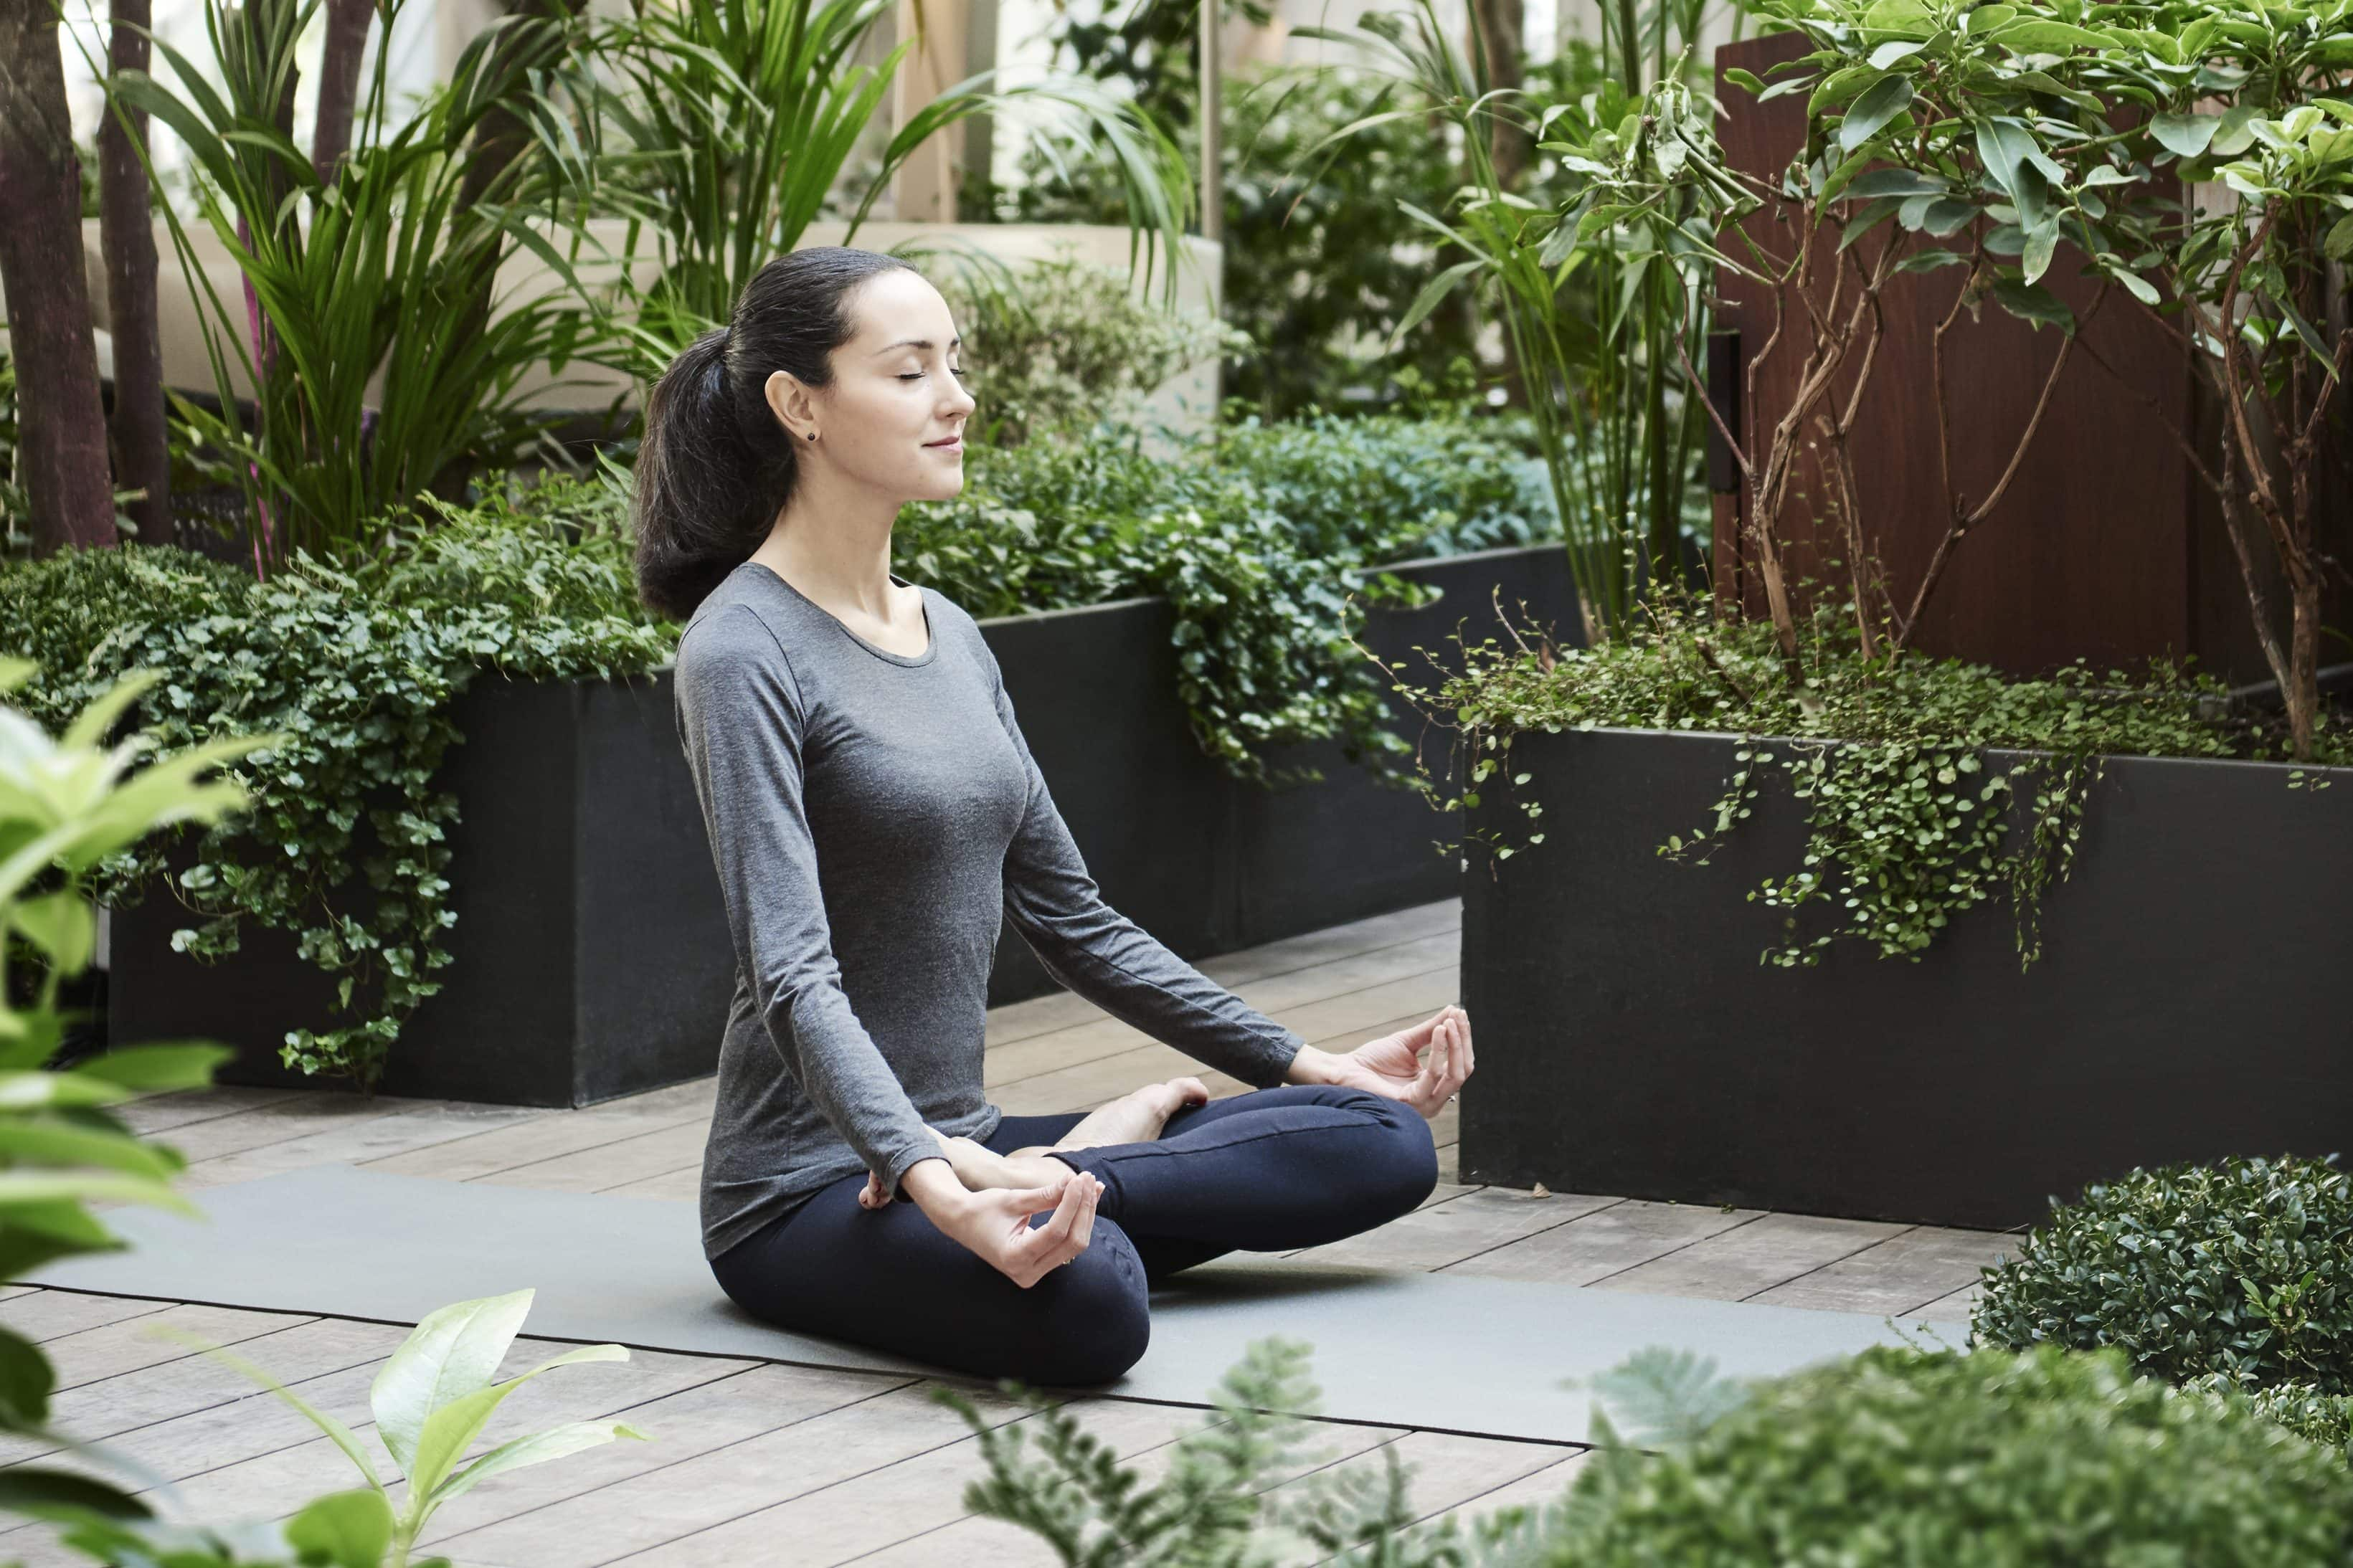 Create a space to meditate